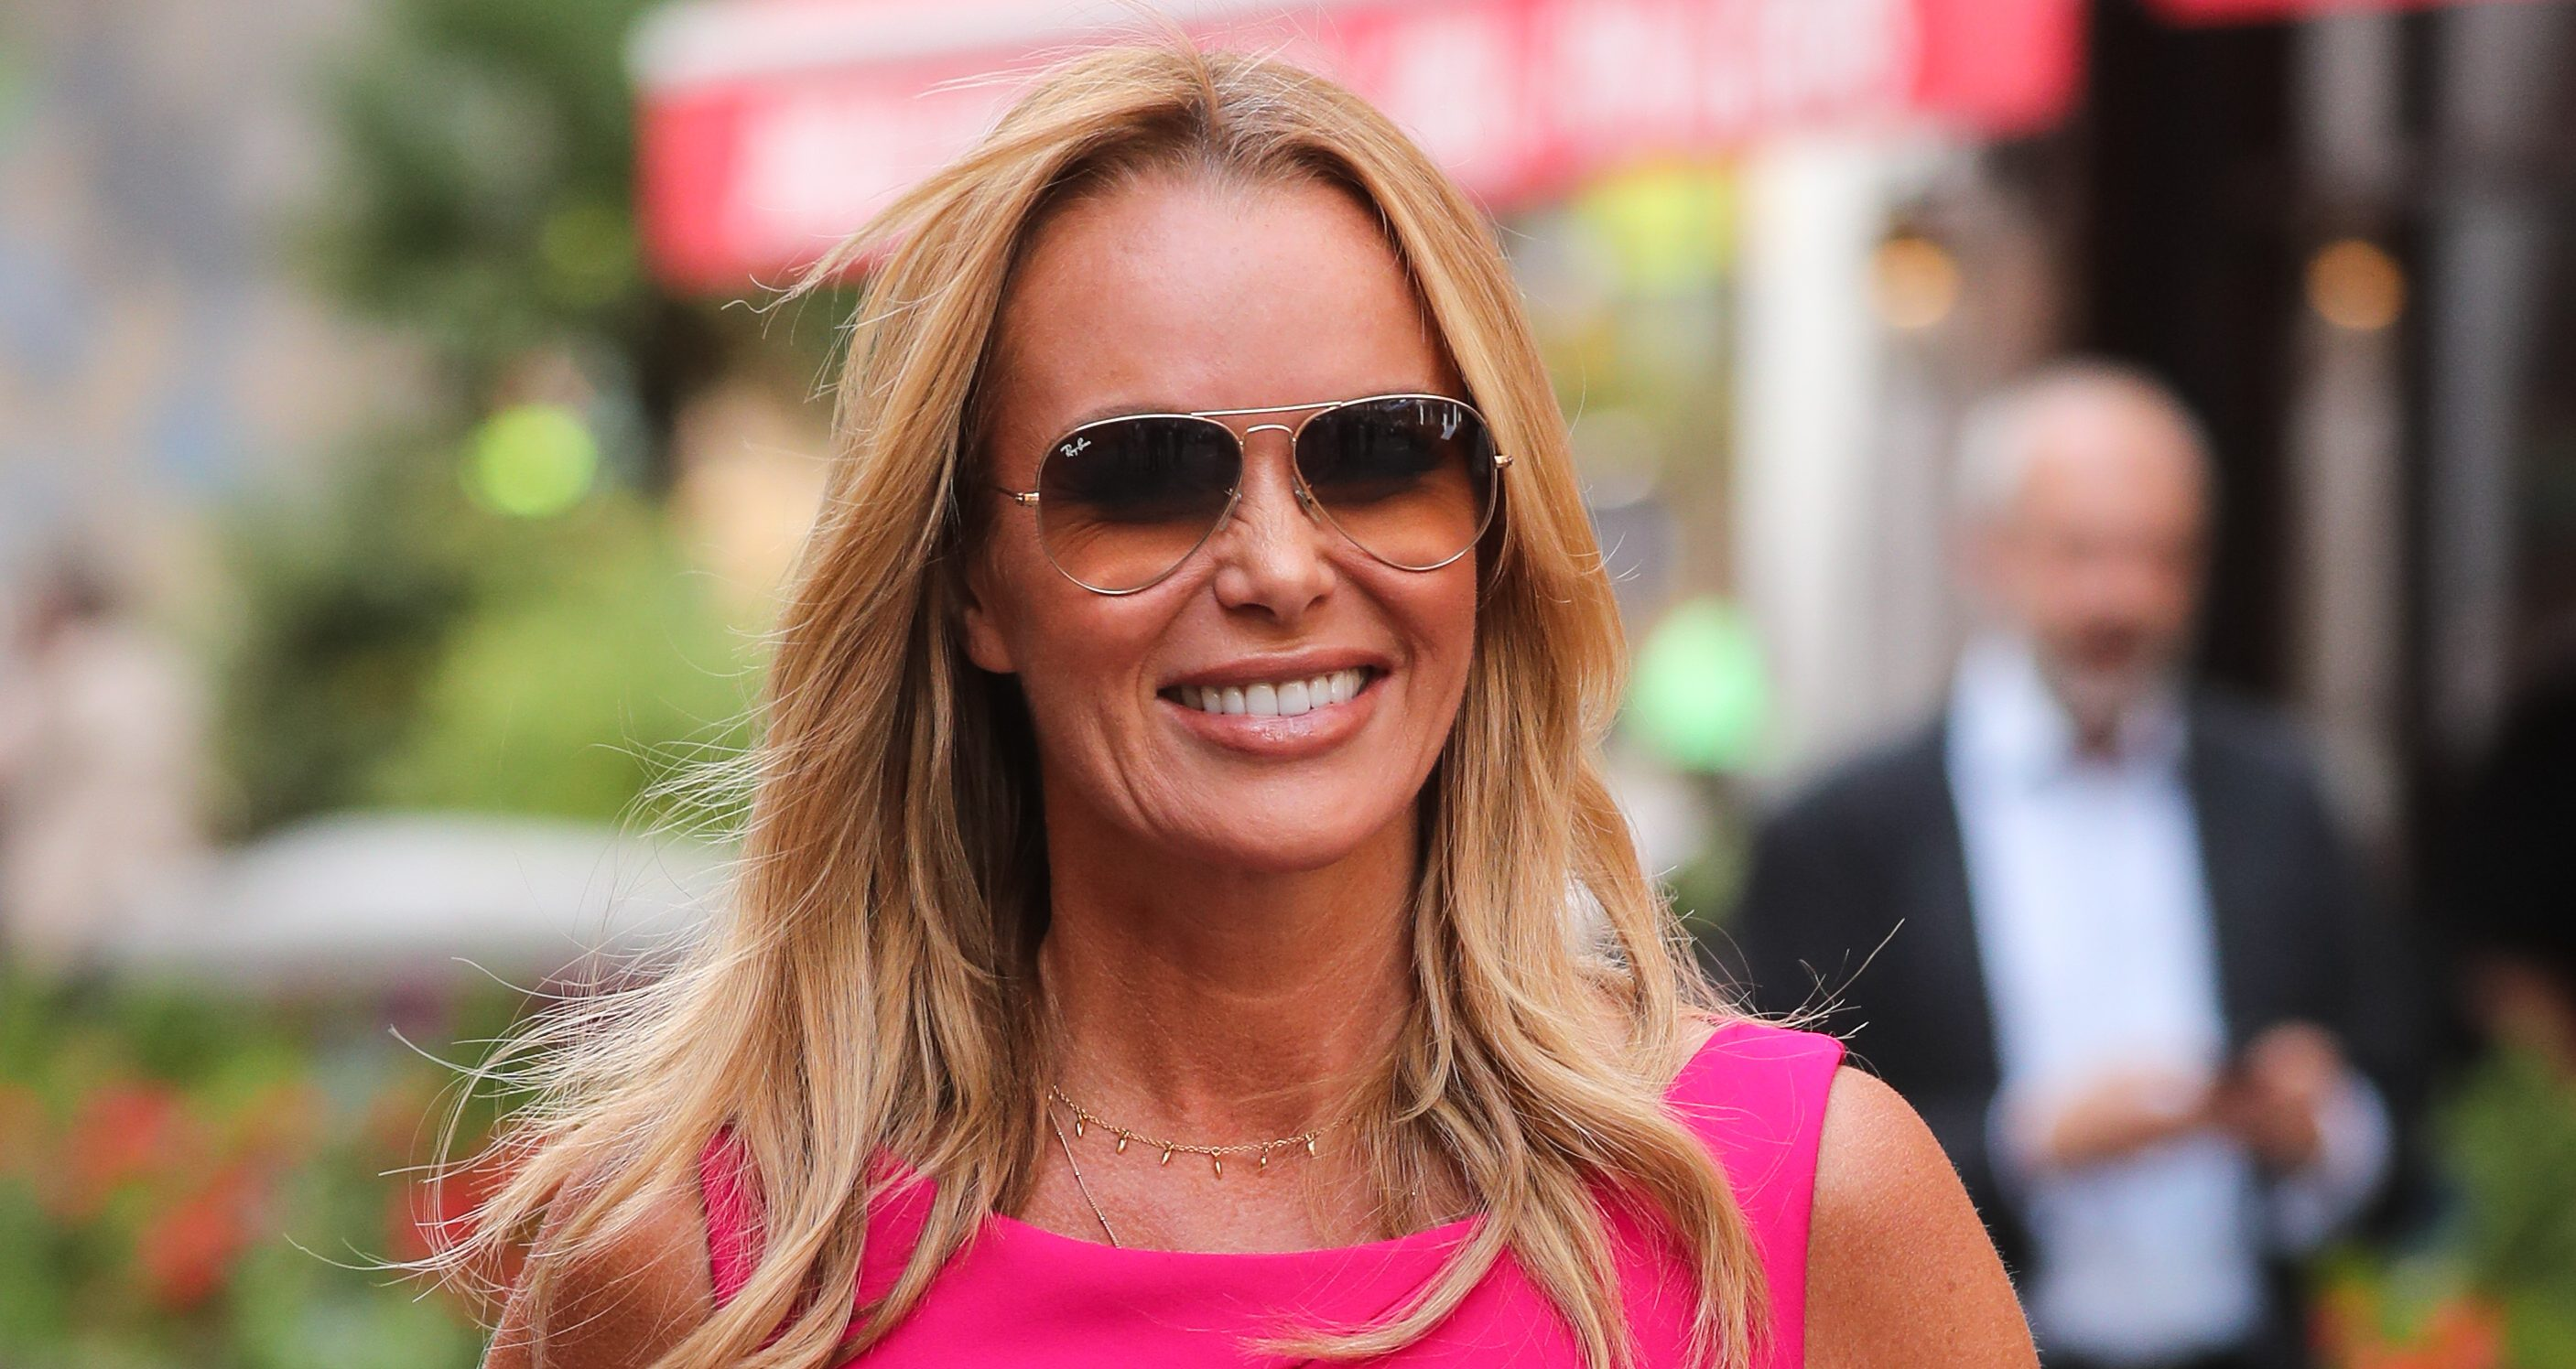 Amanda Holden responds to rumours she's set to appear on I'm A Celebrity